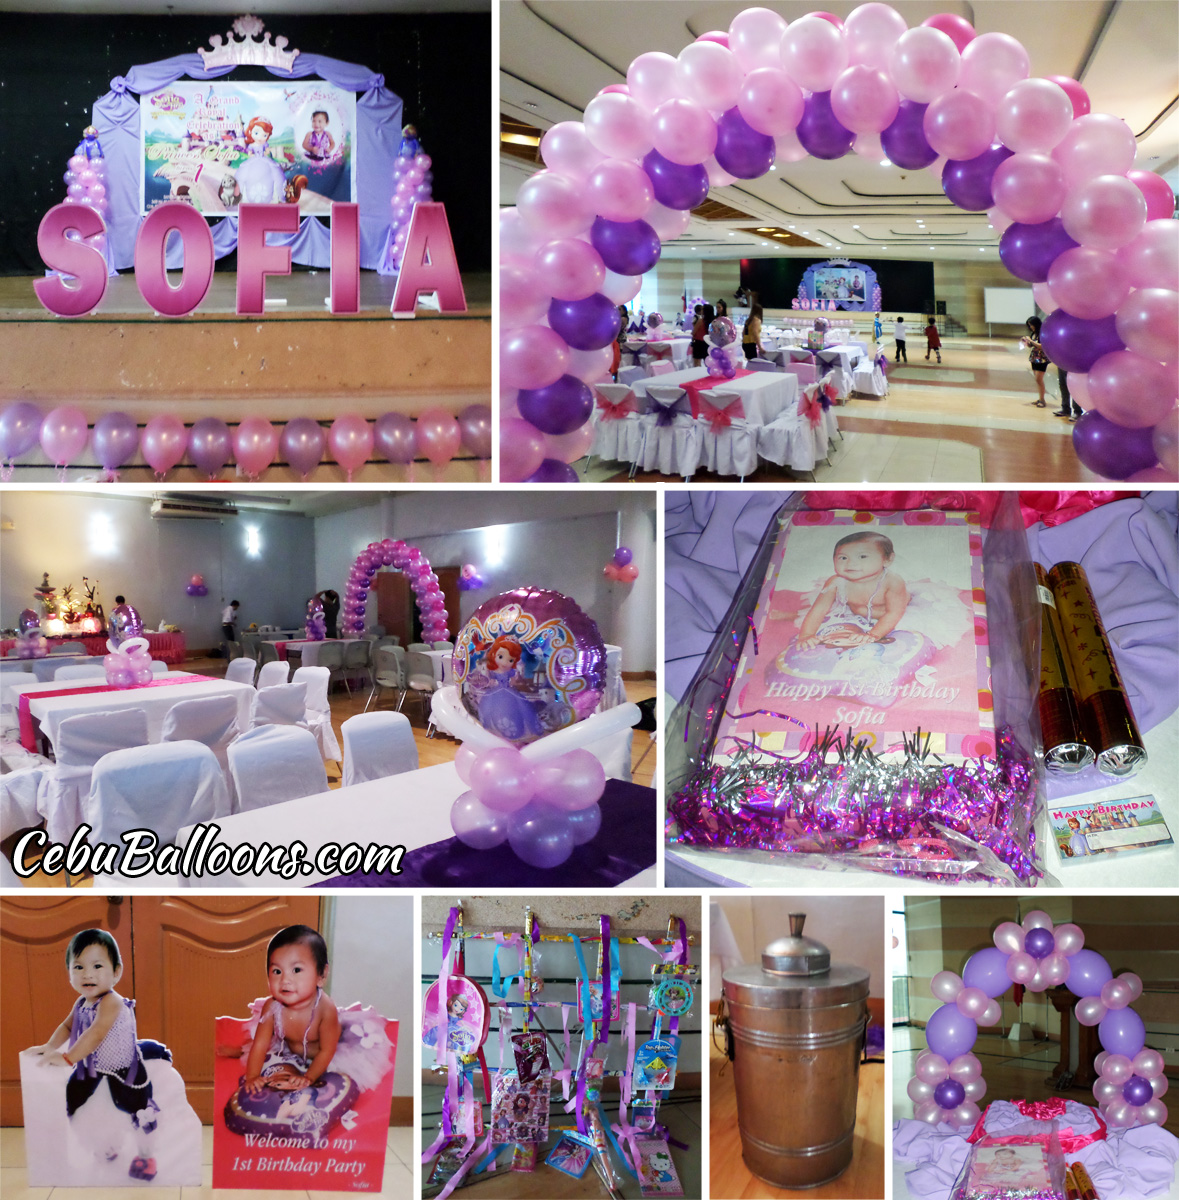 Sofia the first cebu balloons and party supplies for 1st birthday hall decoration ideas